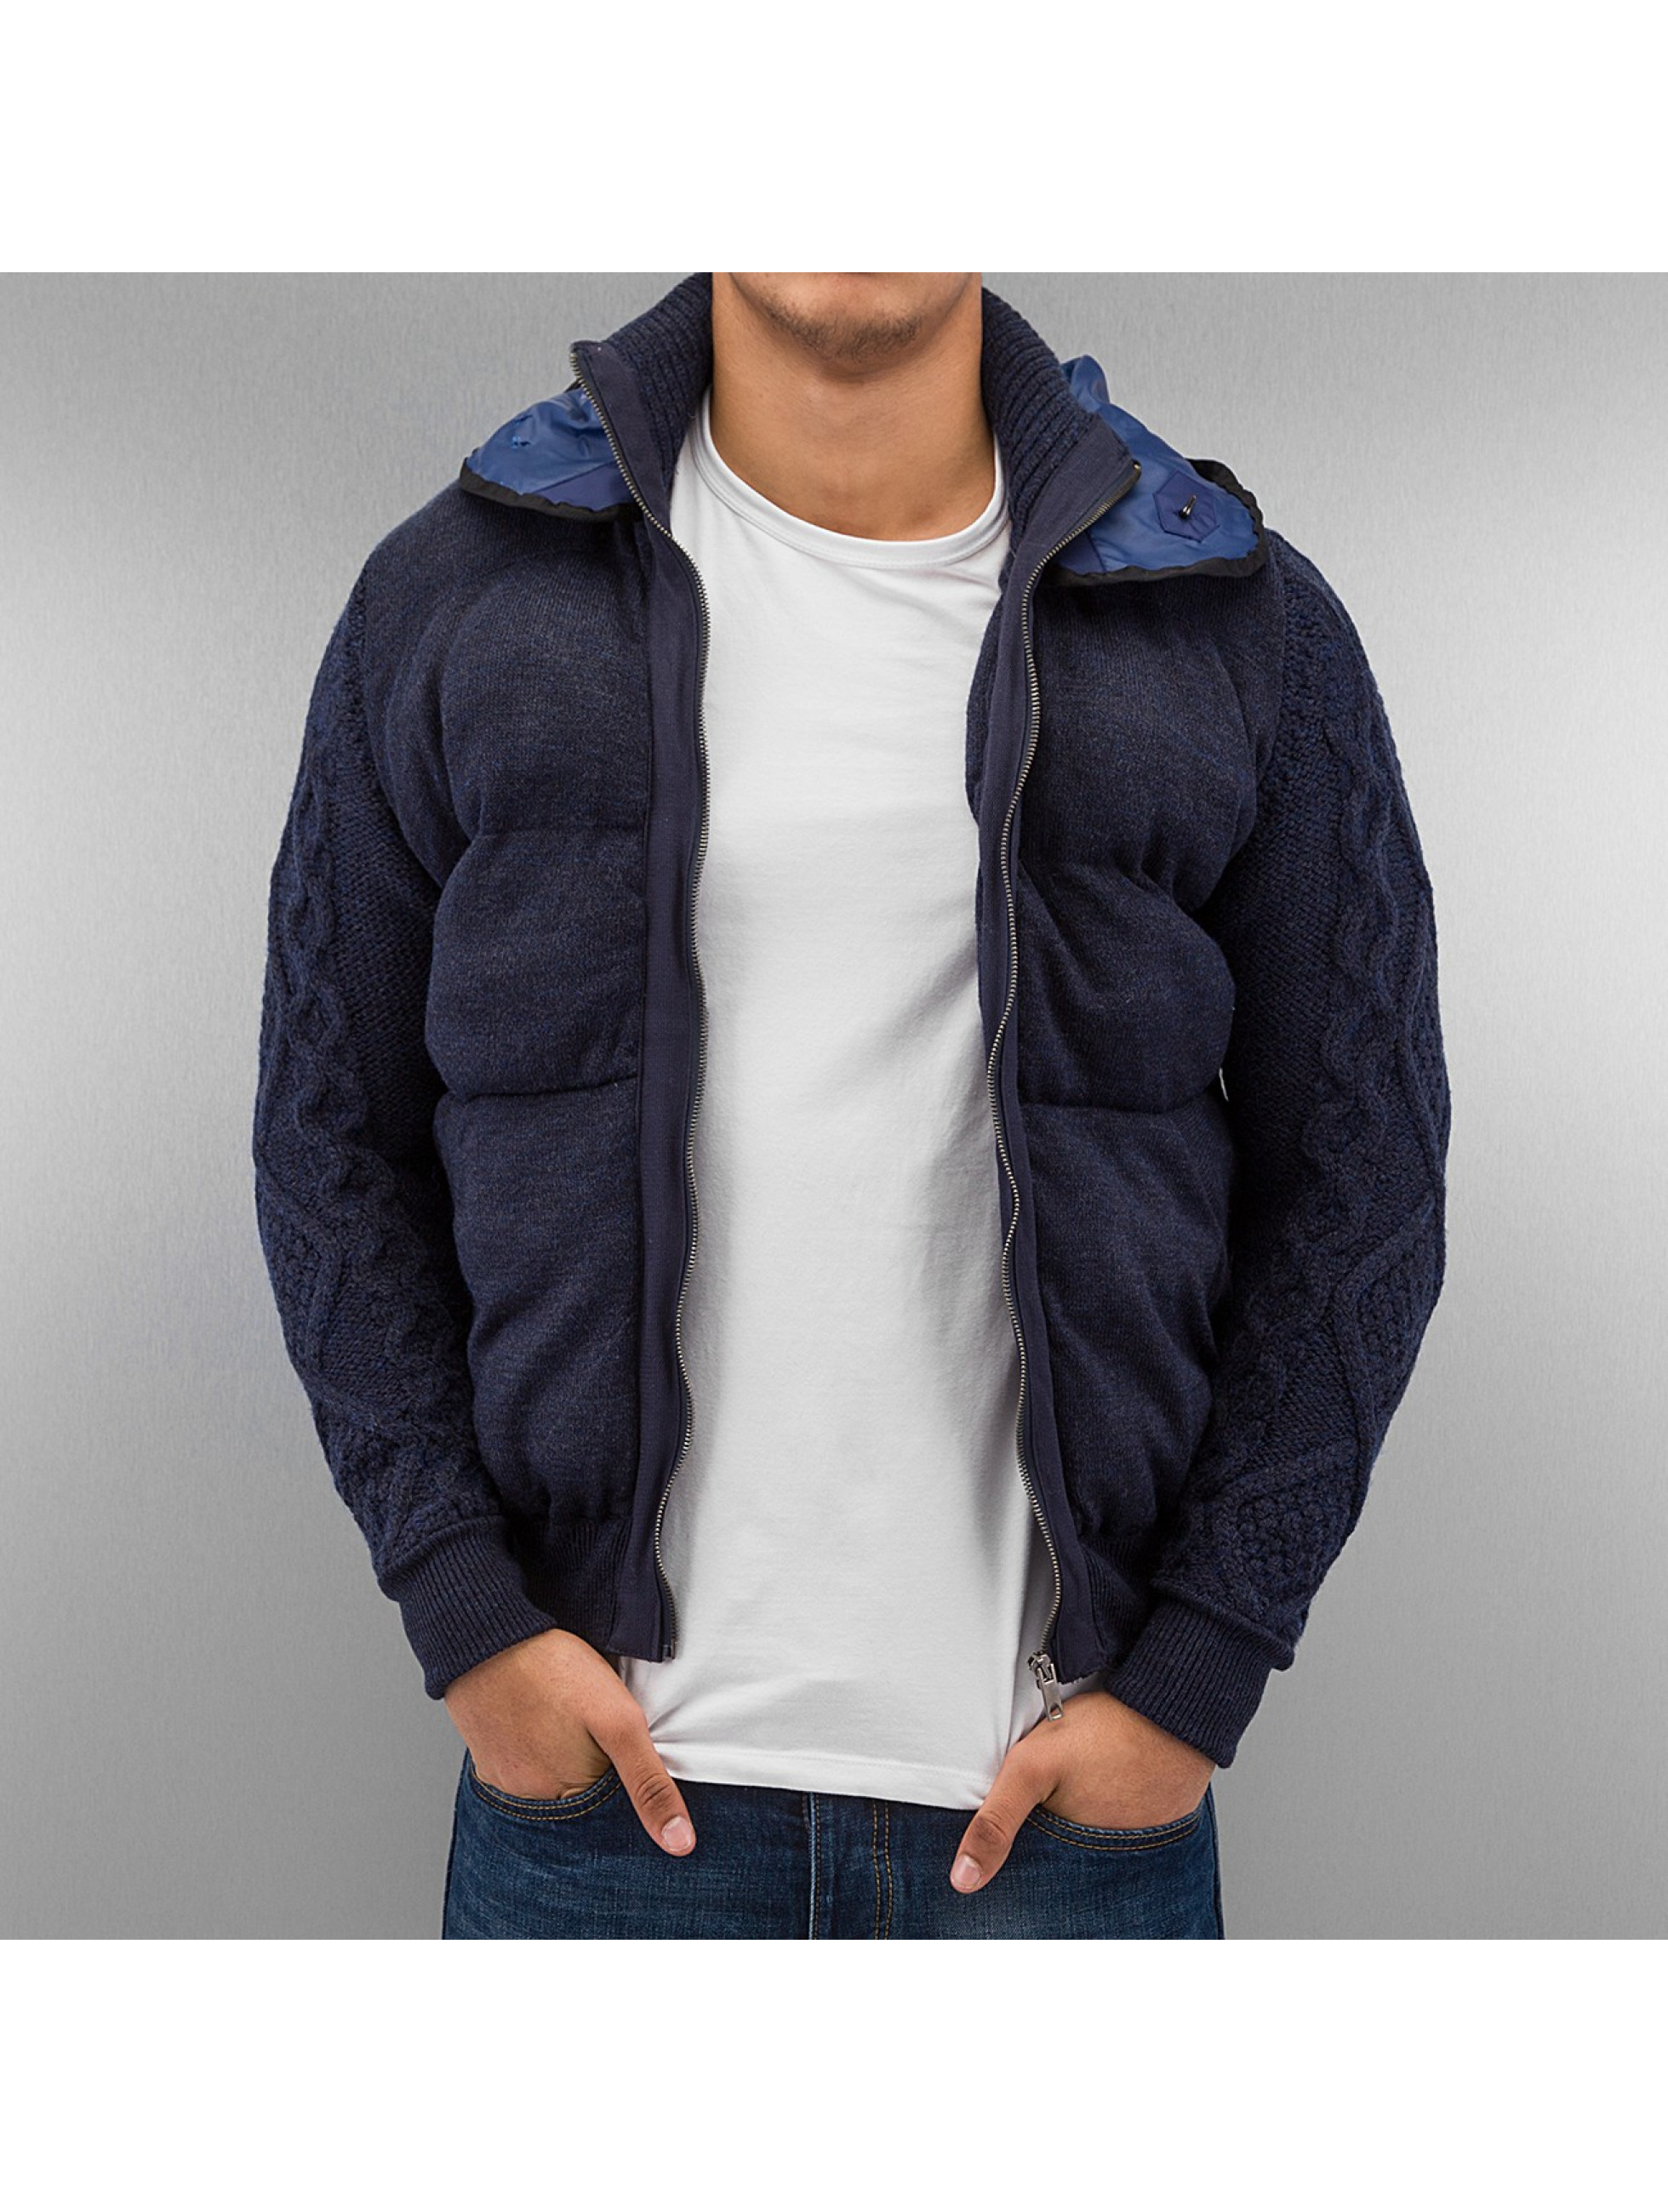 Just Rhyse / Lightweight Jacket Open in blue S